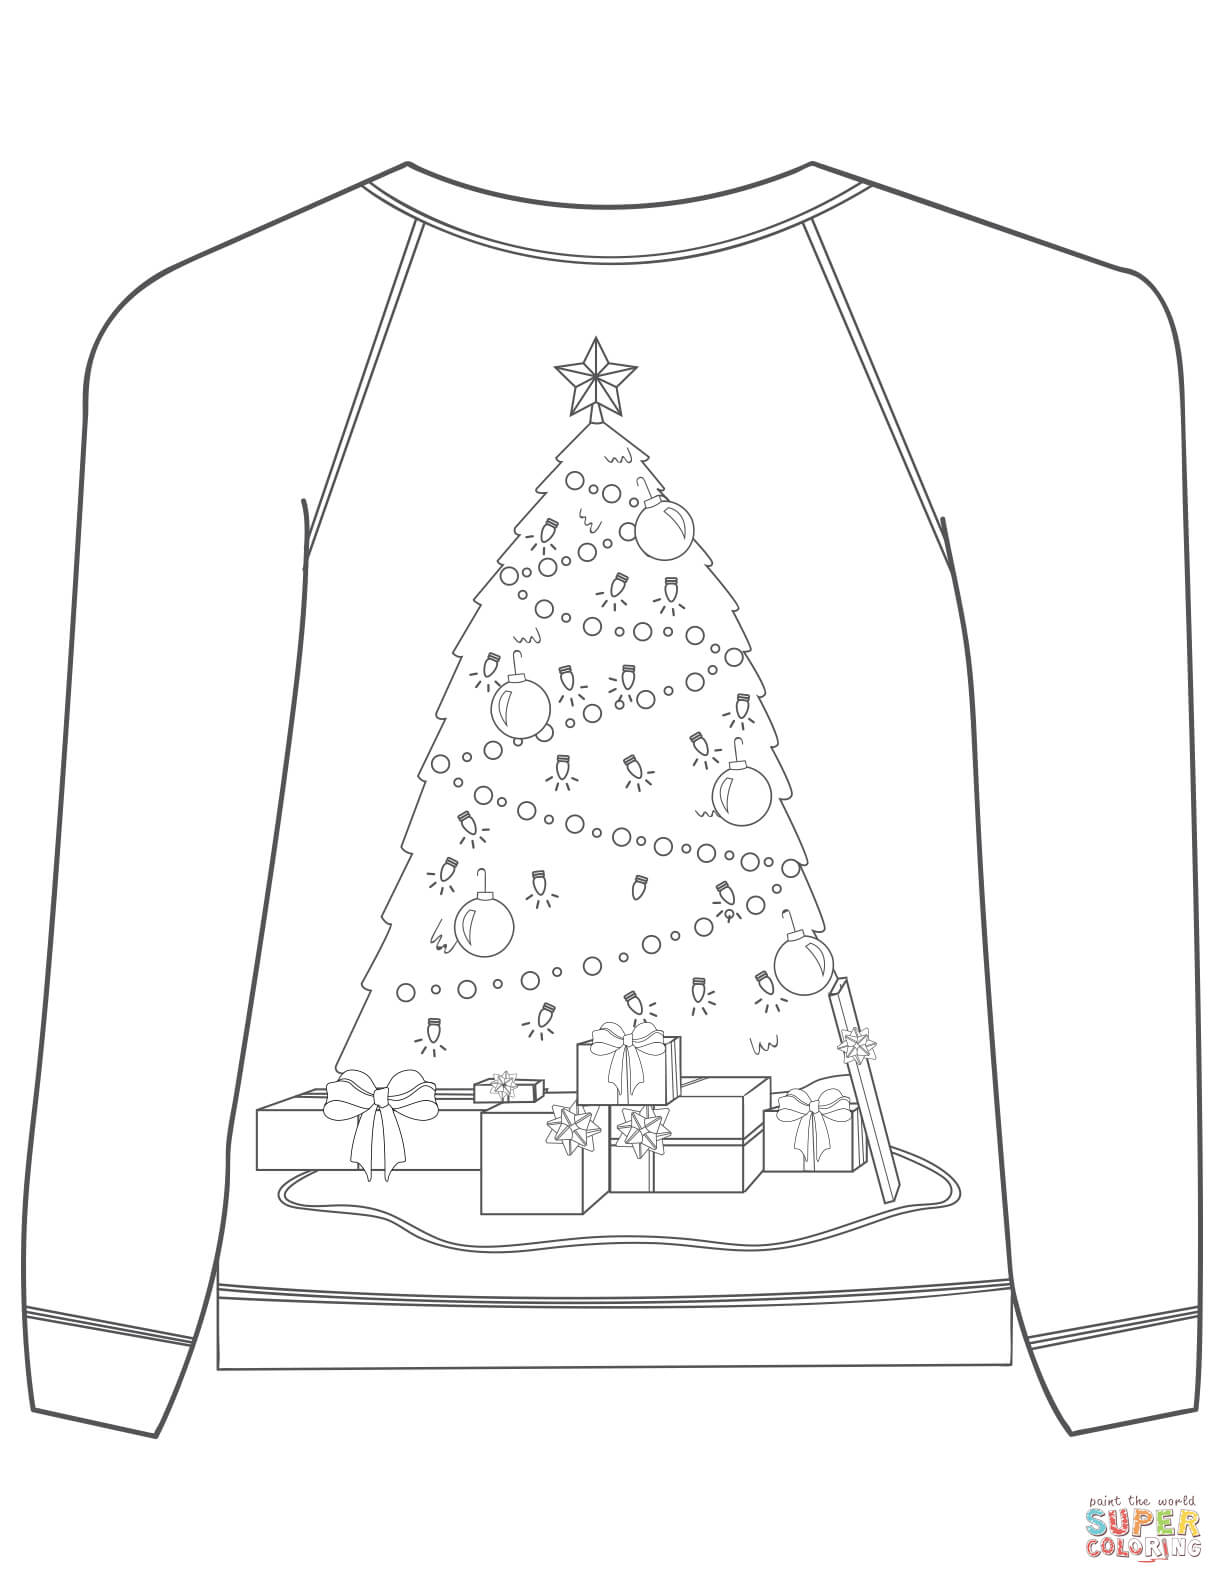 sweater coloring page sweater coloring sheet coloring pages coloring sweater page